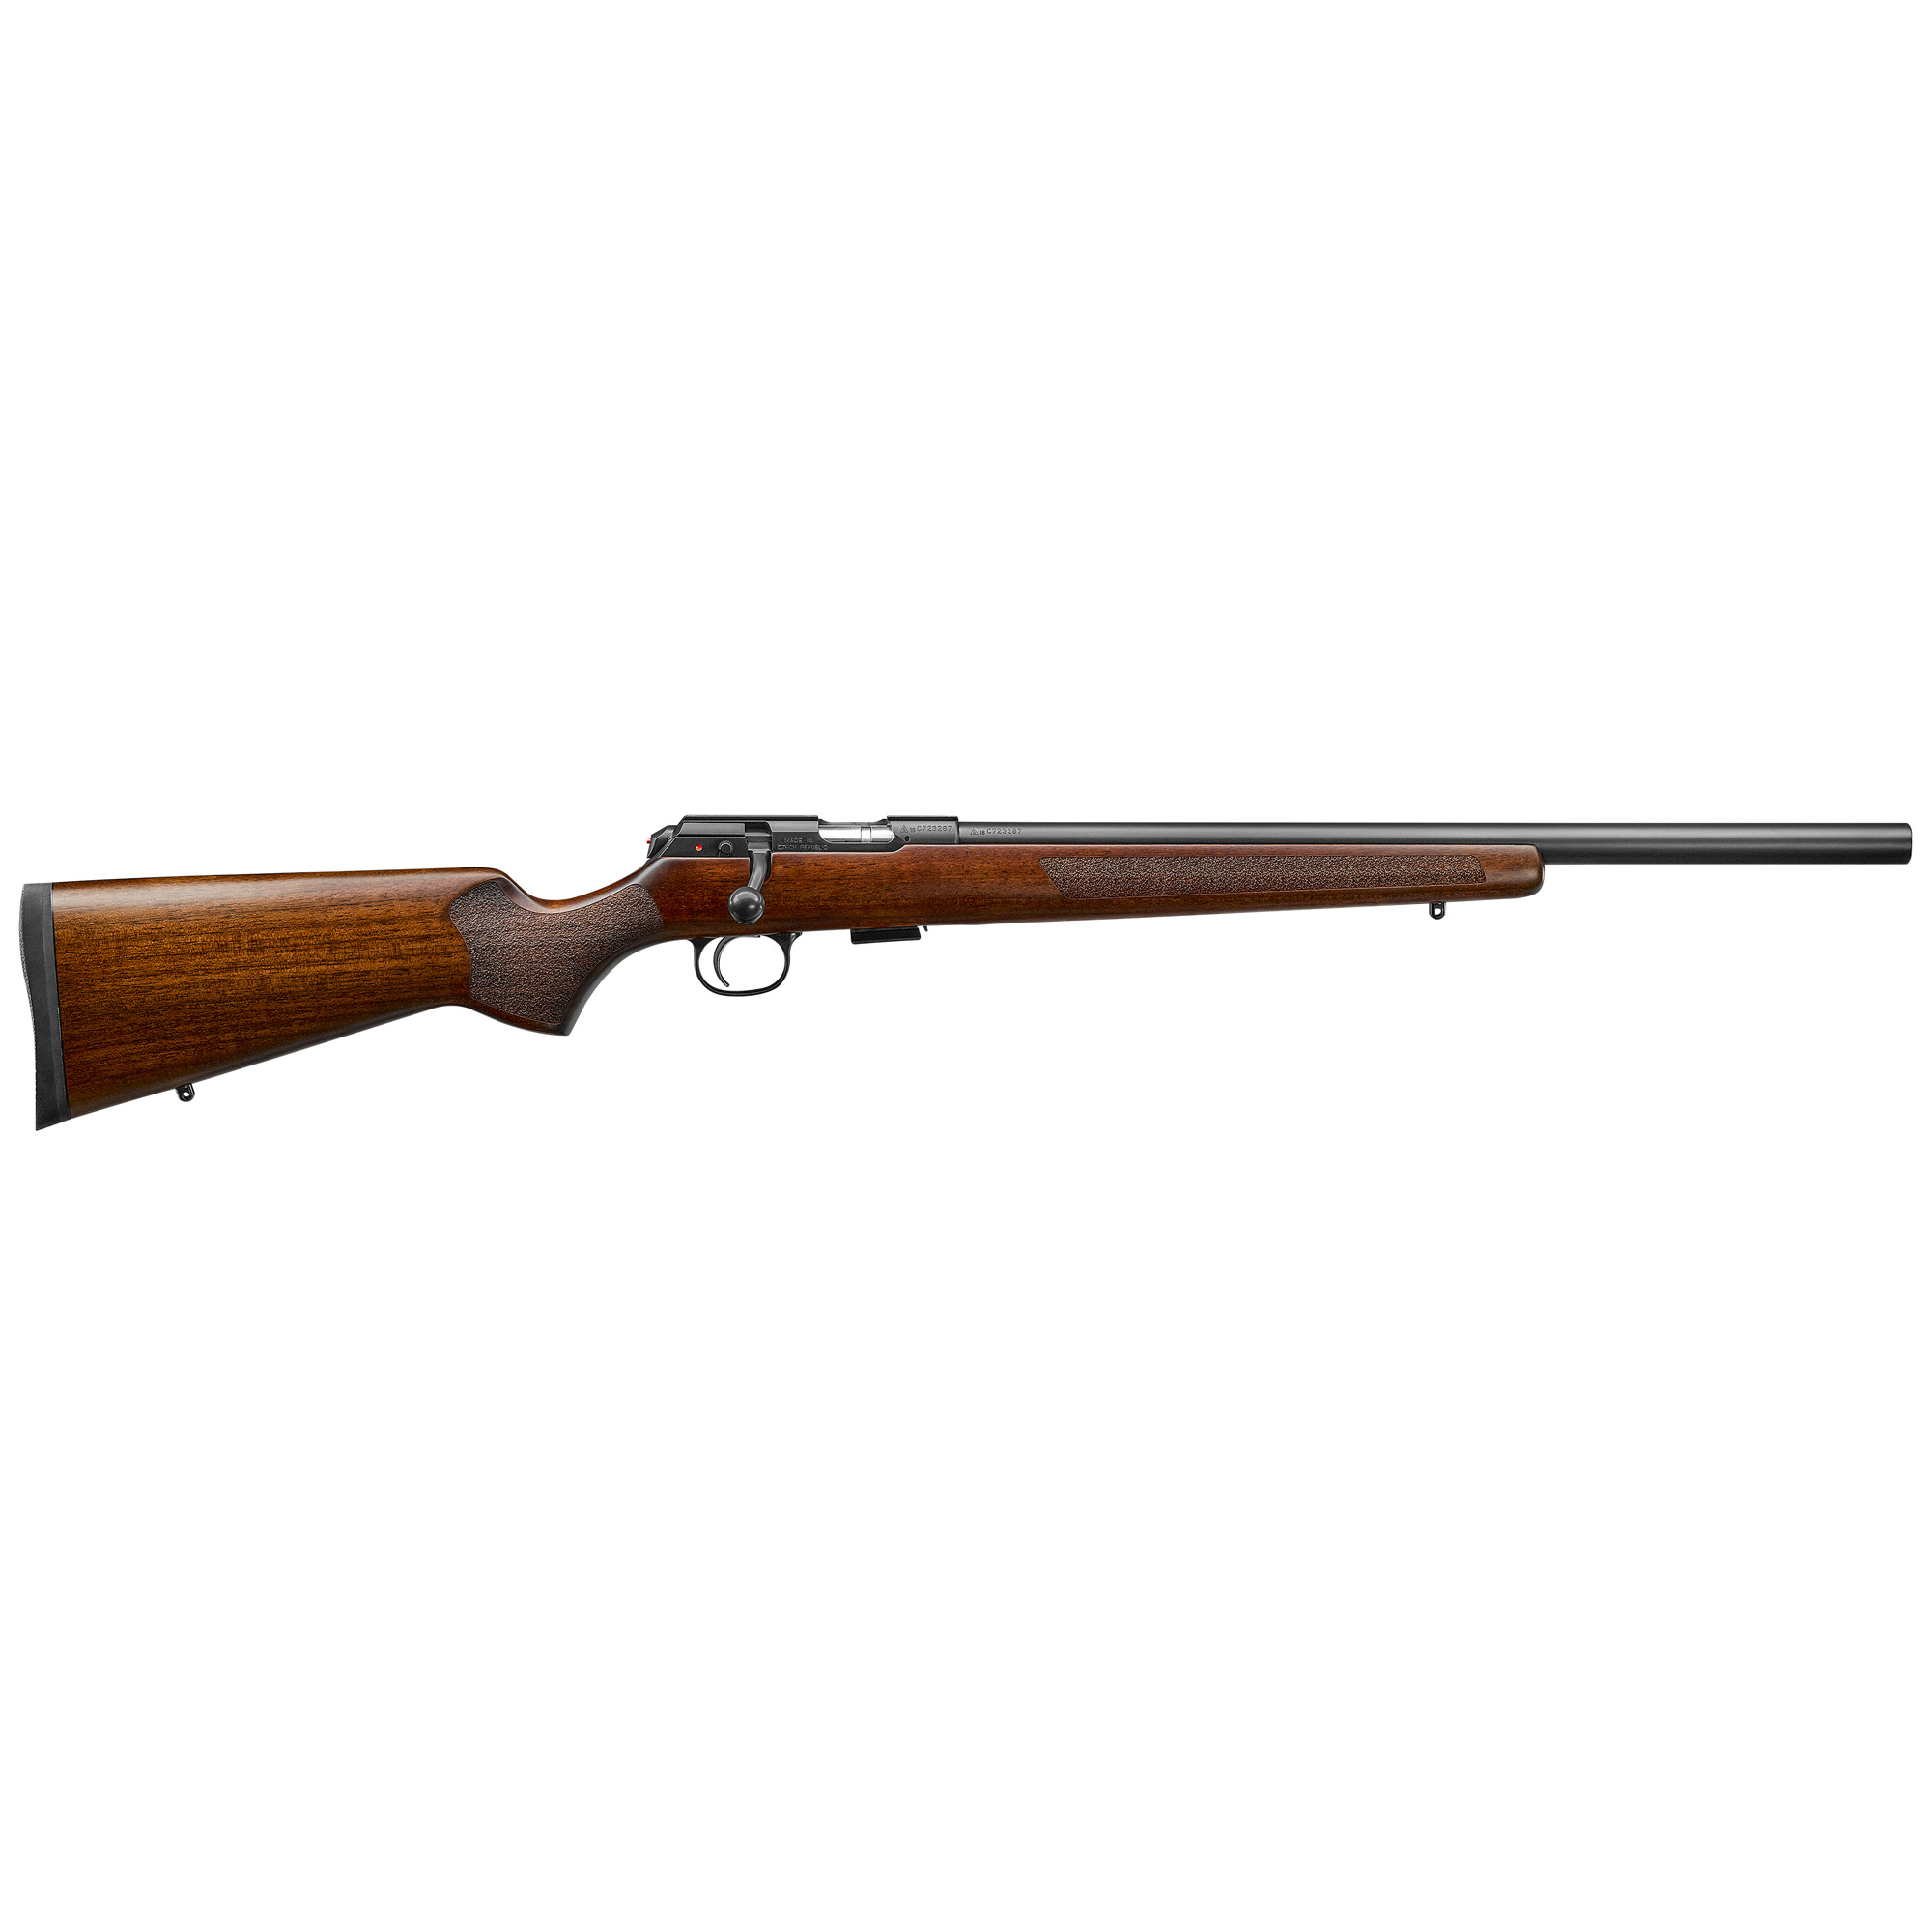 """The standard heavy-barreled version of the 457"""" the Varmint has a .866"""" cylindrical barrel. Not only does the heavy barrel make for good harmonics"""" it also allows the Varmint to perform well with a wide variety of rimfire loads"""" translating into an accurate platform for shooting targets or getting game. The Turkish walnut stock has an American-style comb for use with a scope and a wide"""" flat forend that rides a sandbag well. Laser-cut stippling gives grip fore and aft. This is the .22 LR"""" 5-round model."""